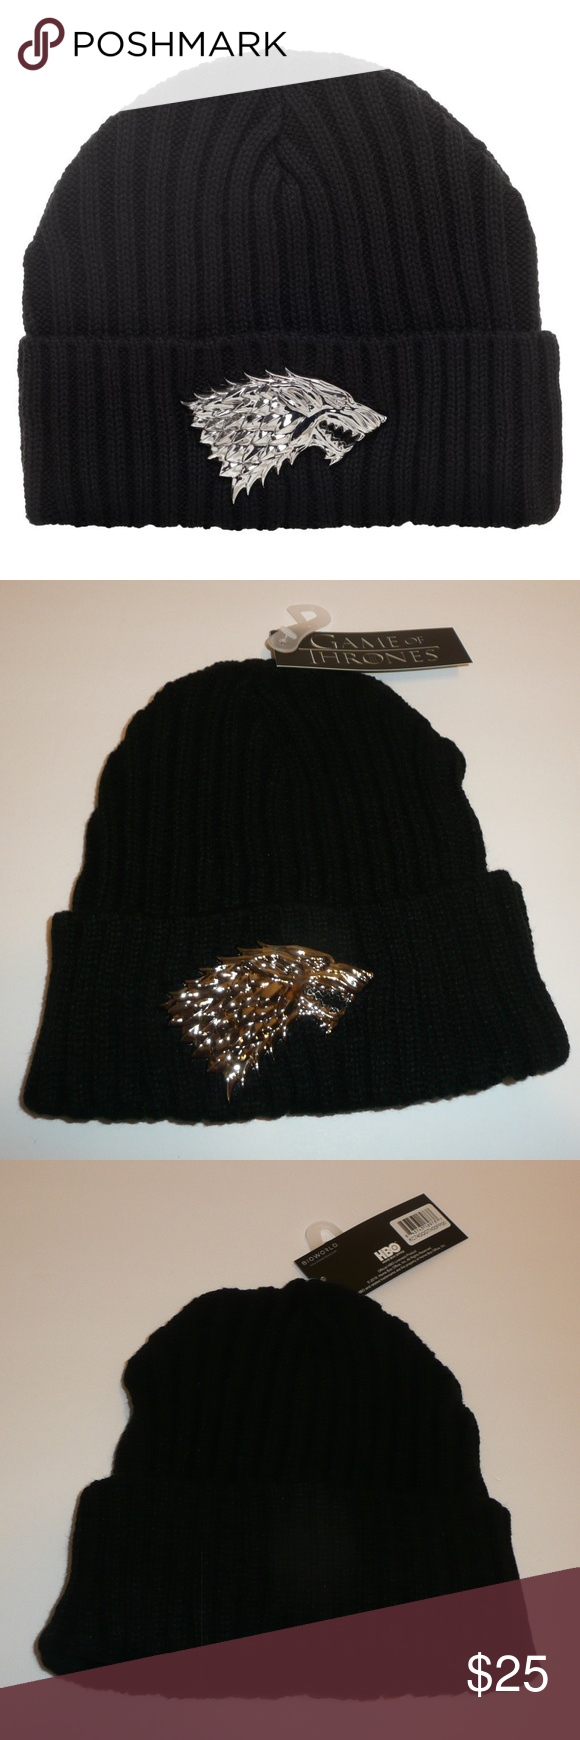 0949ae23f7800 House Stark Dire Wolf Game of Thrones Beanie Hat Winter Is Coming and this  awesome beanie will keep you warm throughout the holiday season and beyond!